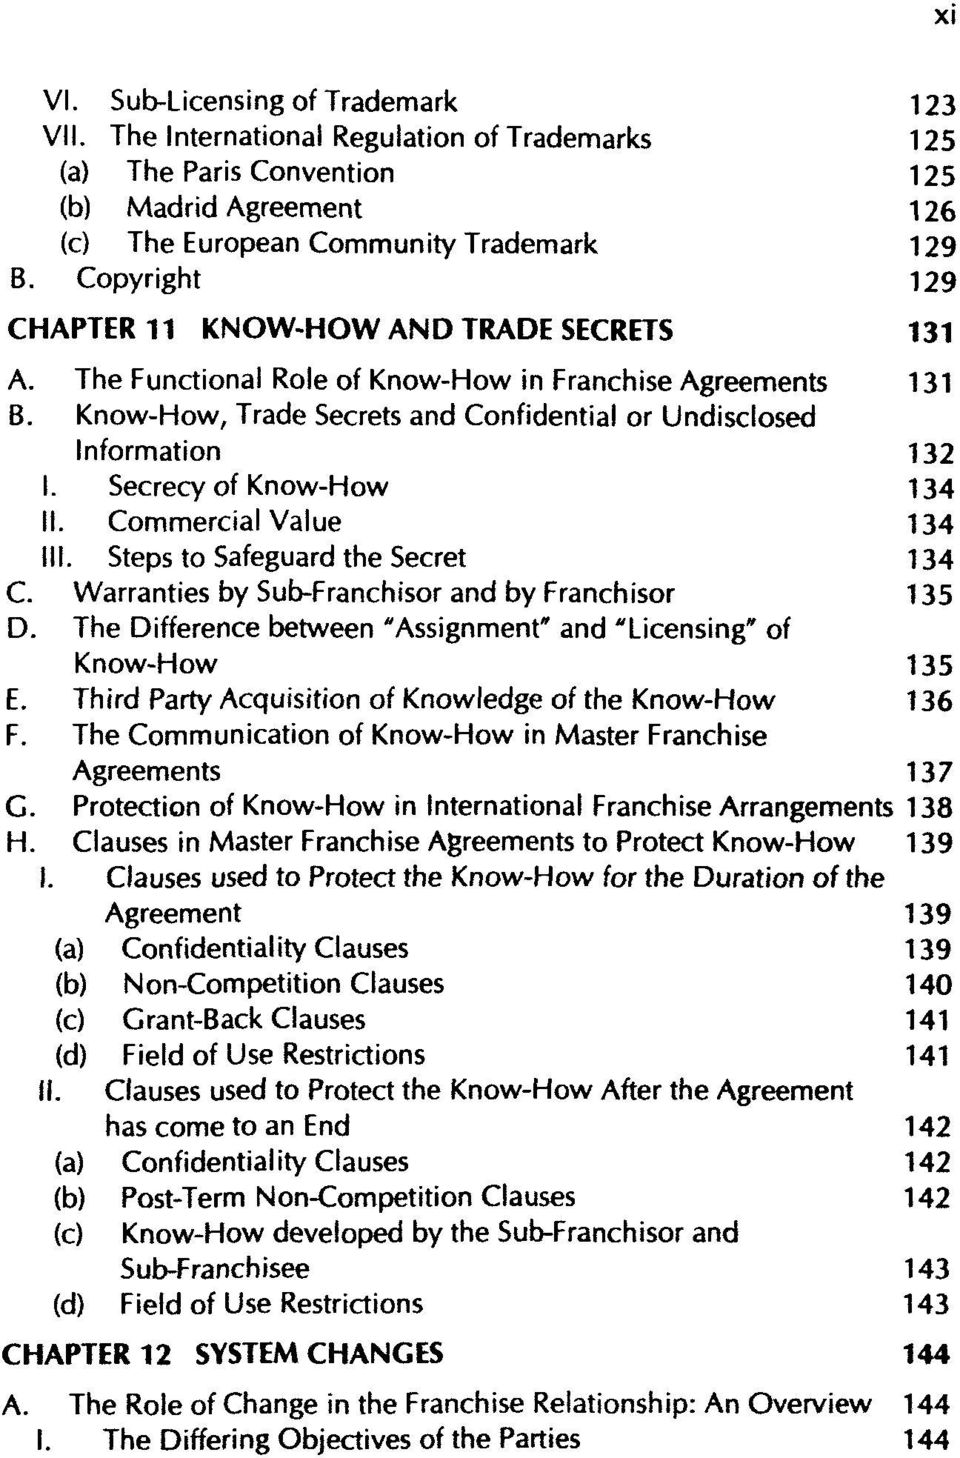 Secrecy of Know-How 134 II. Commercial Value 134 III. Steps to Safeguard the Secret 134 C. Warranties by Sub-Franchisor and by Franchisor 135 D.